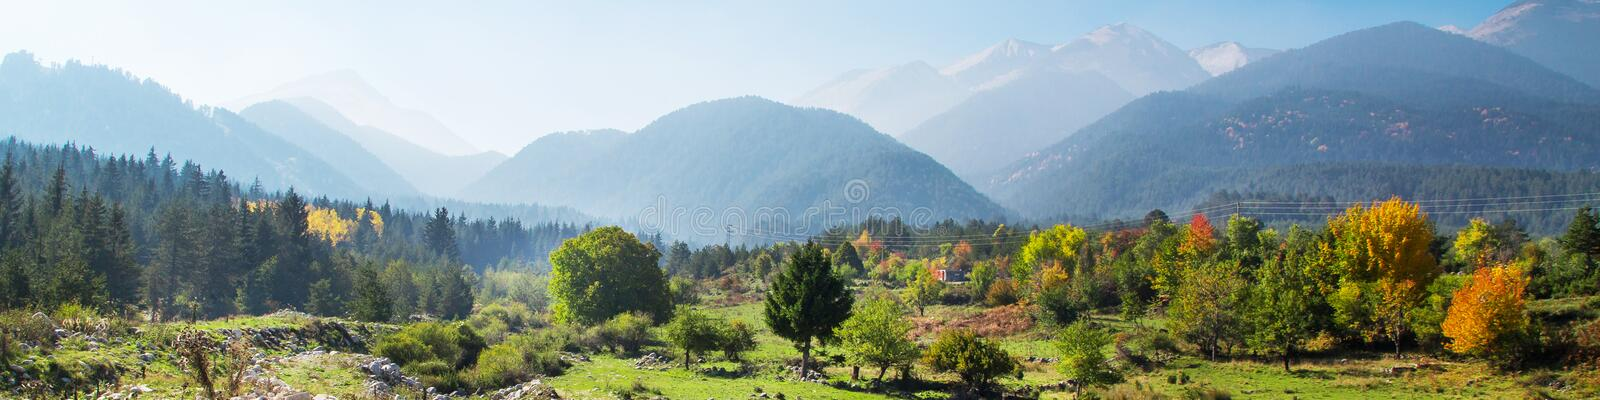 Vibrant autumn panorama background with colorful green, red, yellow trees and mountains peaks royalty free stock photography